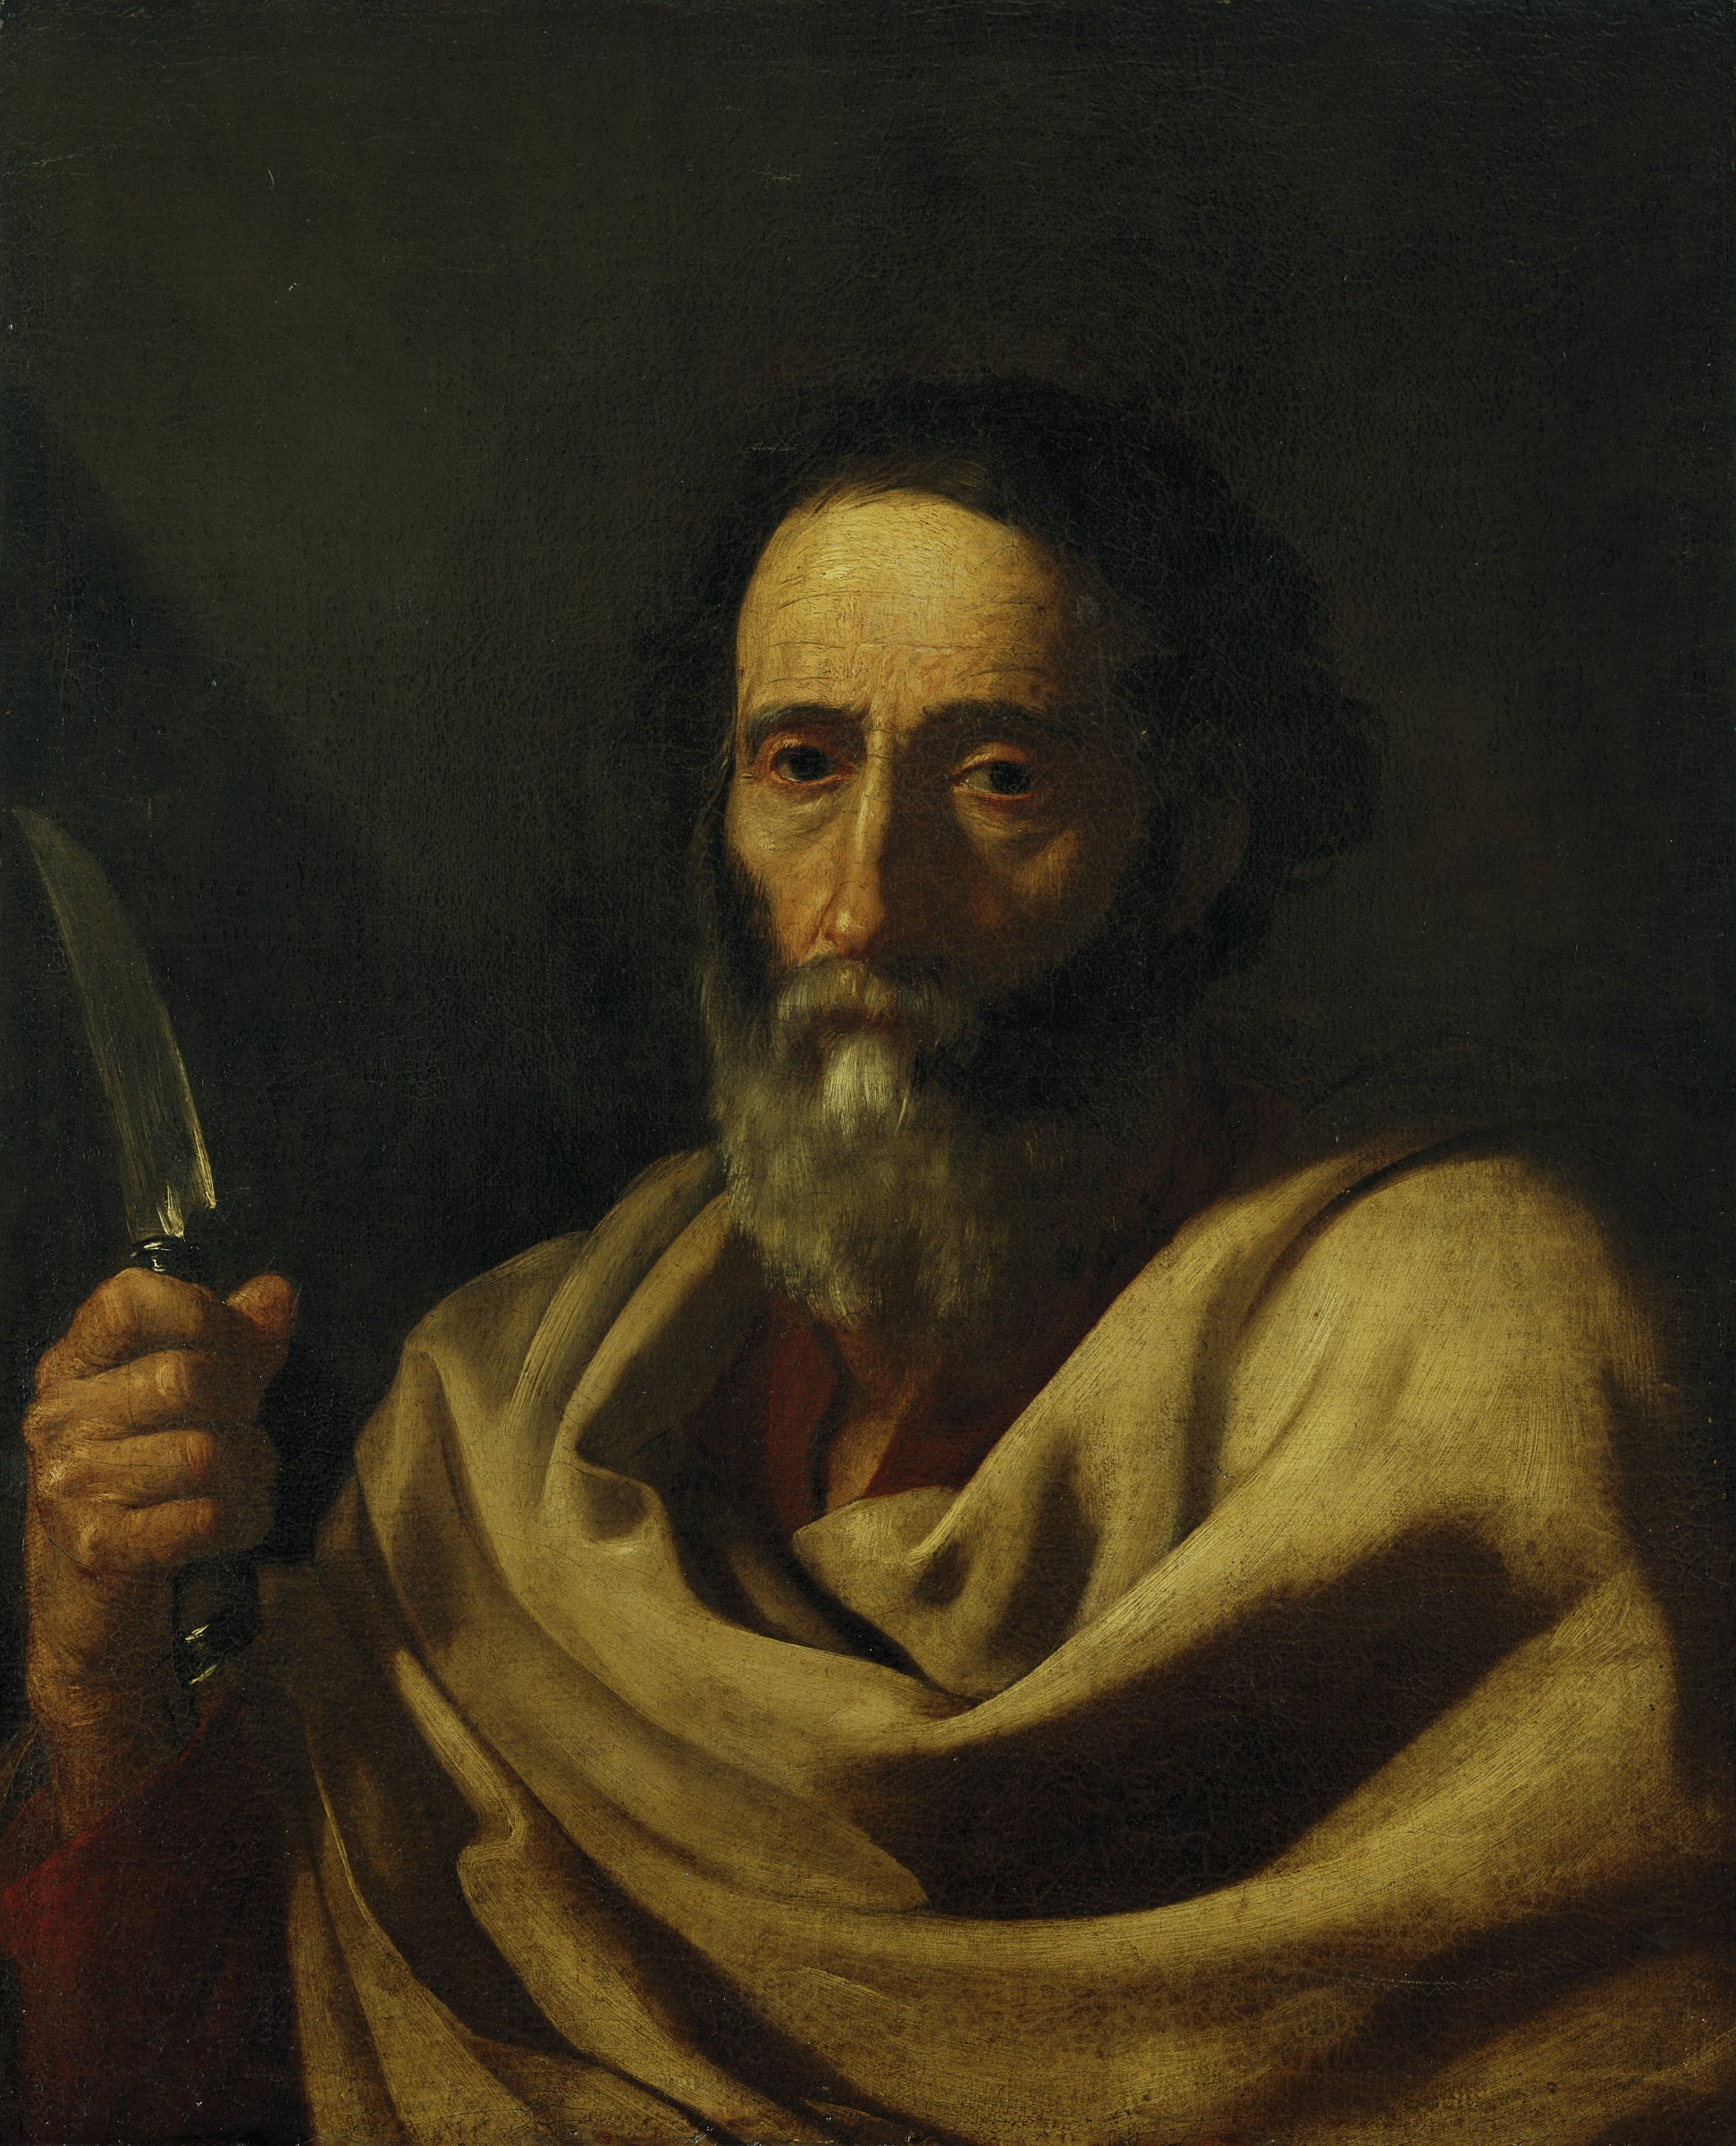 A bearded man, St. Bartholomew, is shown holding a knife, the symbol of his martyrdom.